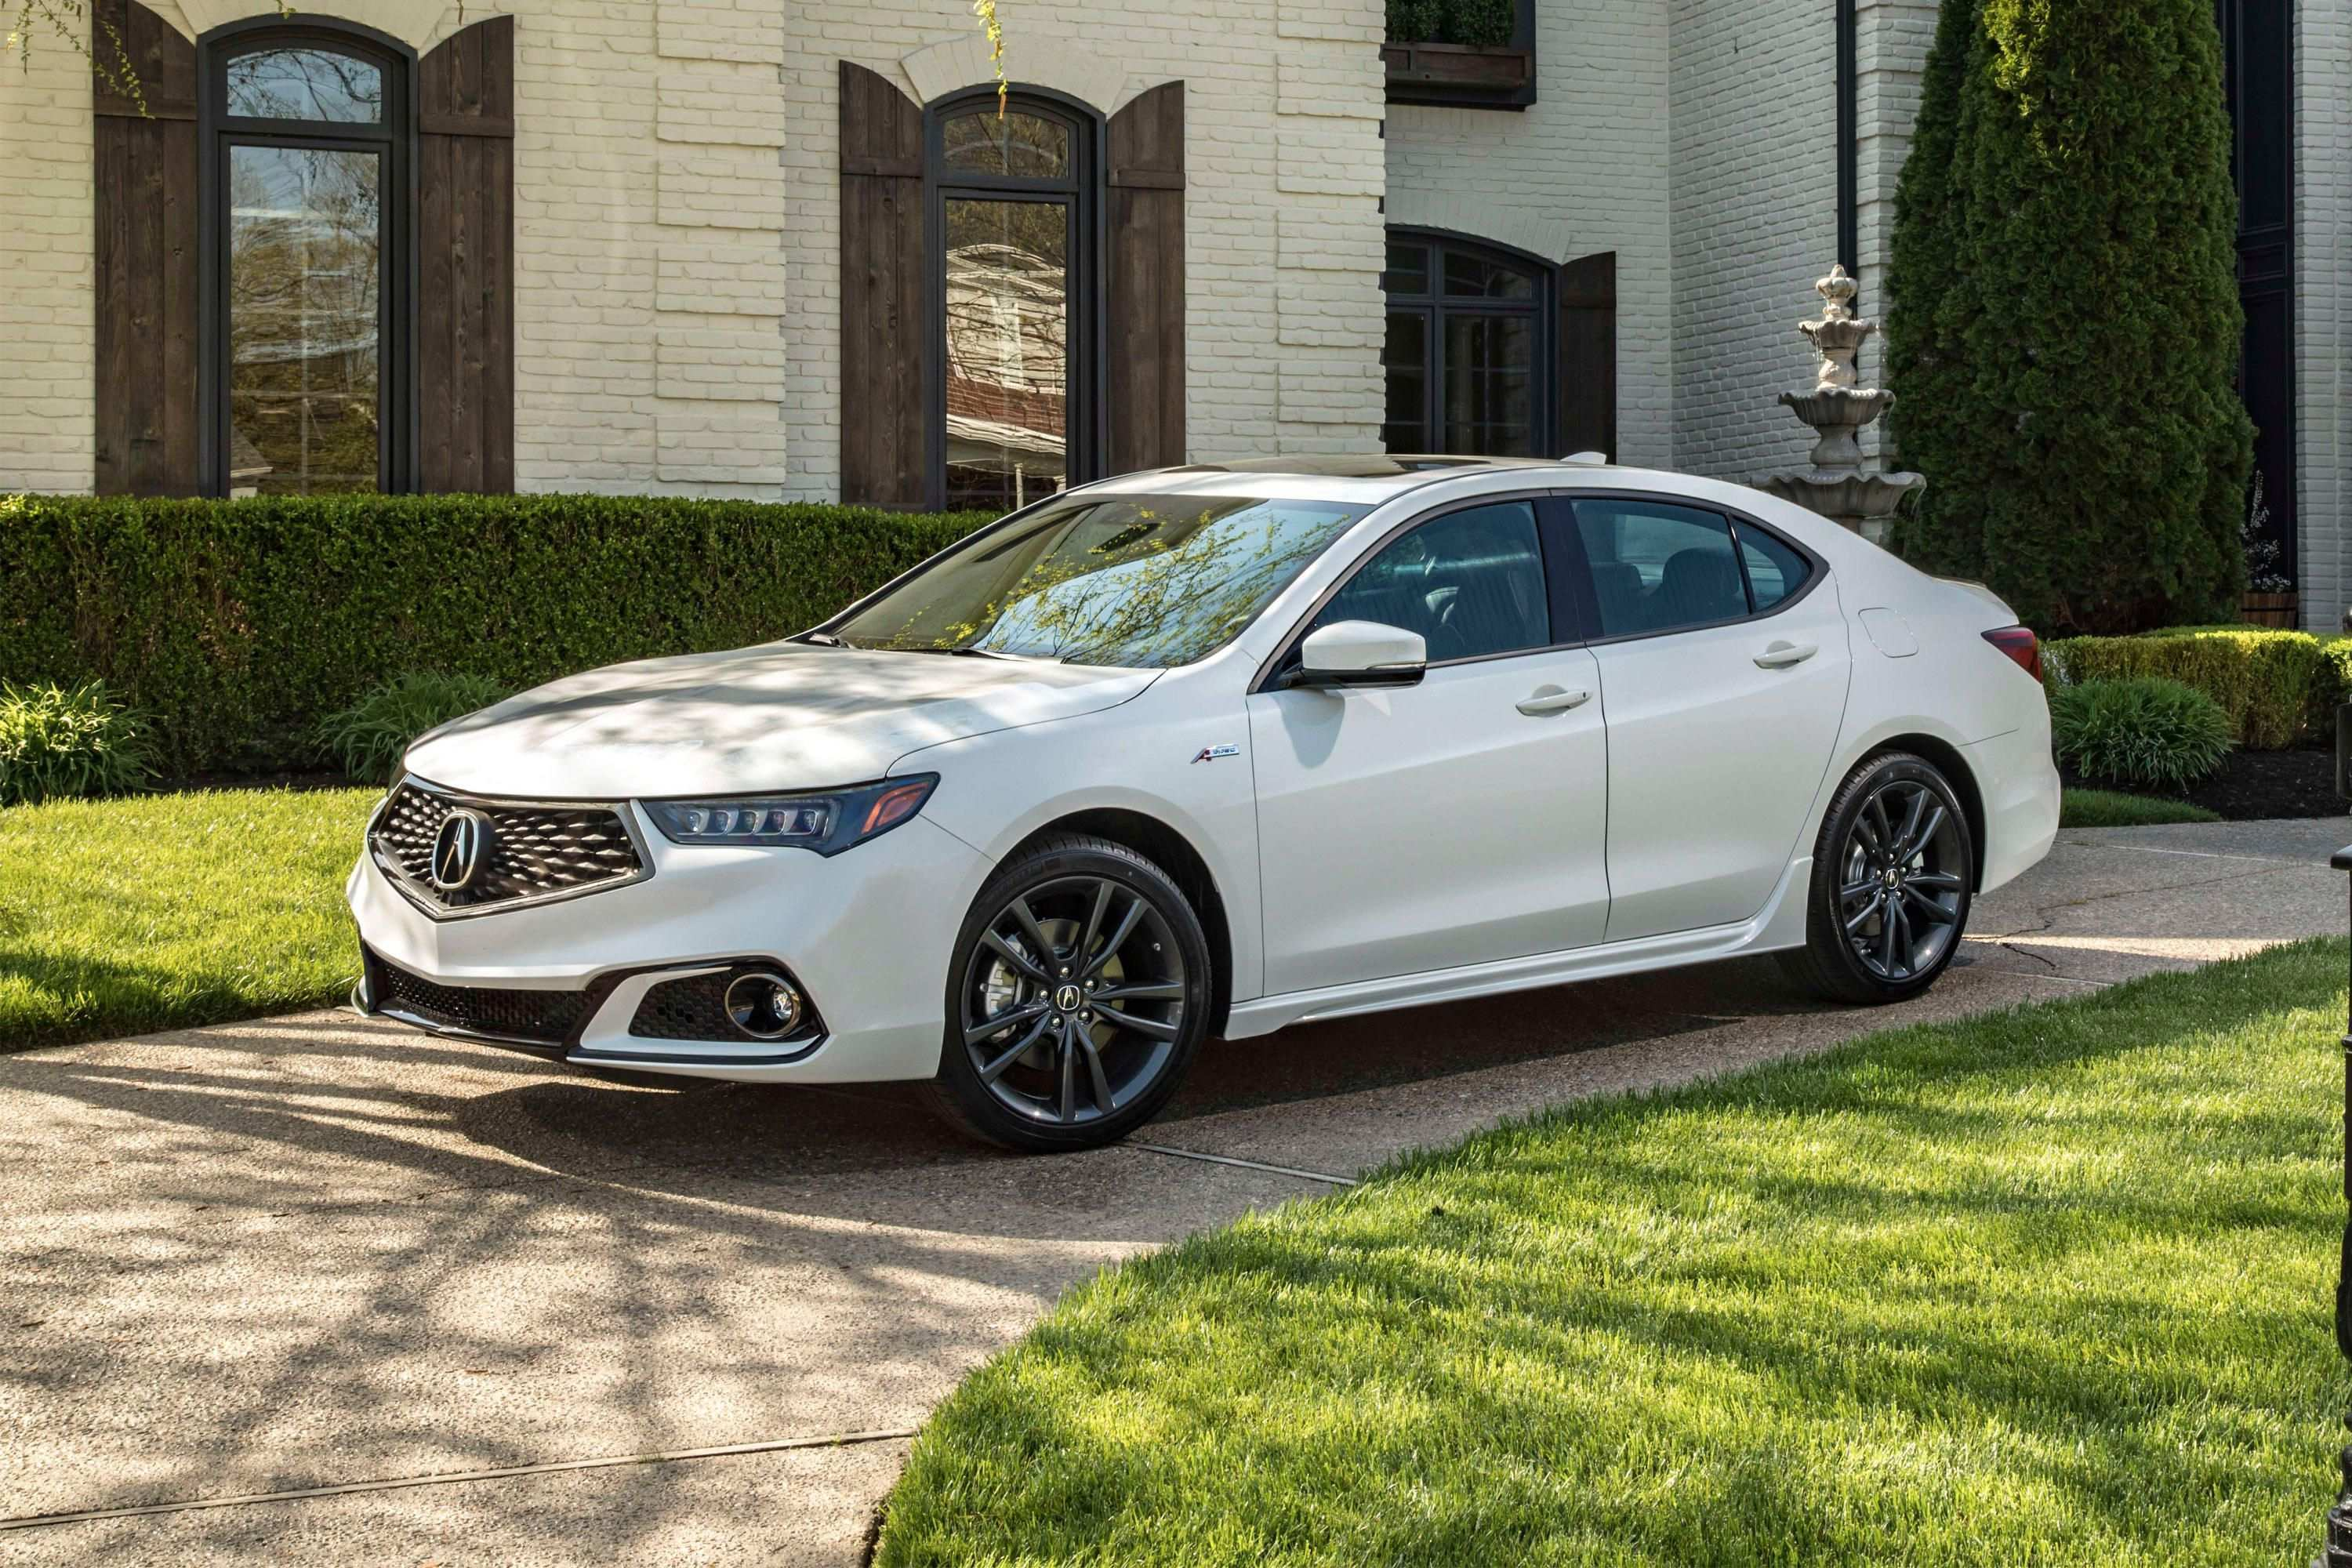 72 Best Review 2019 Acura Tlx Type S Ratings with 2019 Acura Tlx Type S